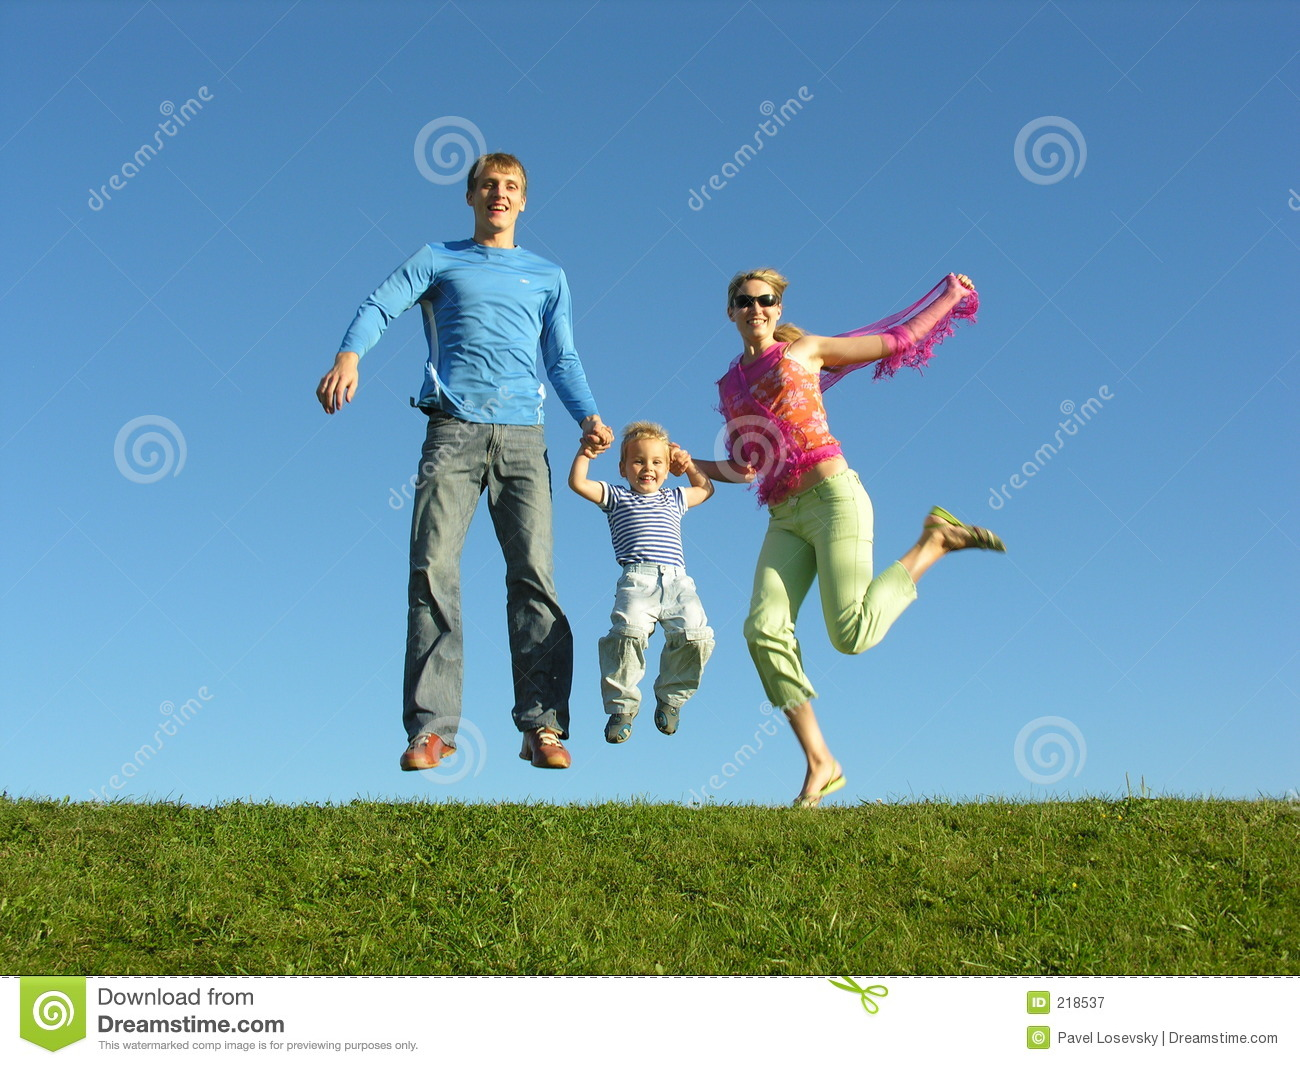 Download Fly Happy Family On Blue Sky Stock Image - Image of happiness, blue: 218537